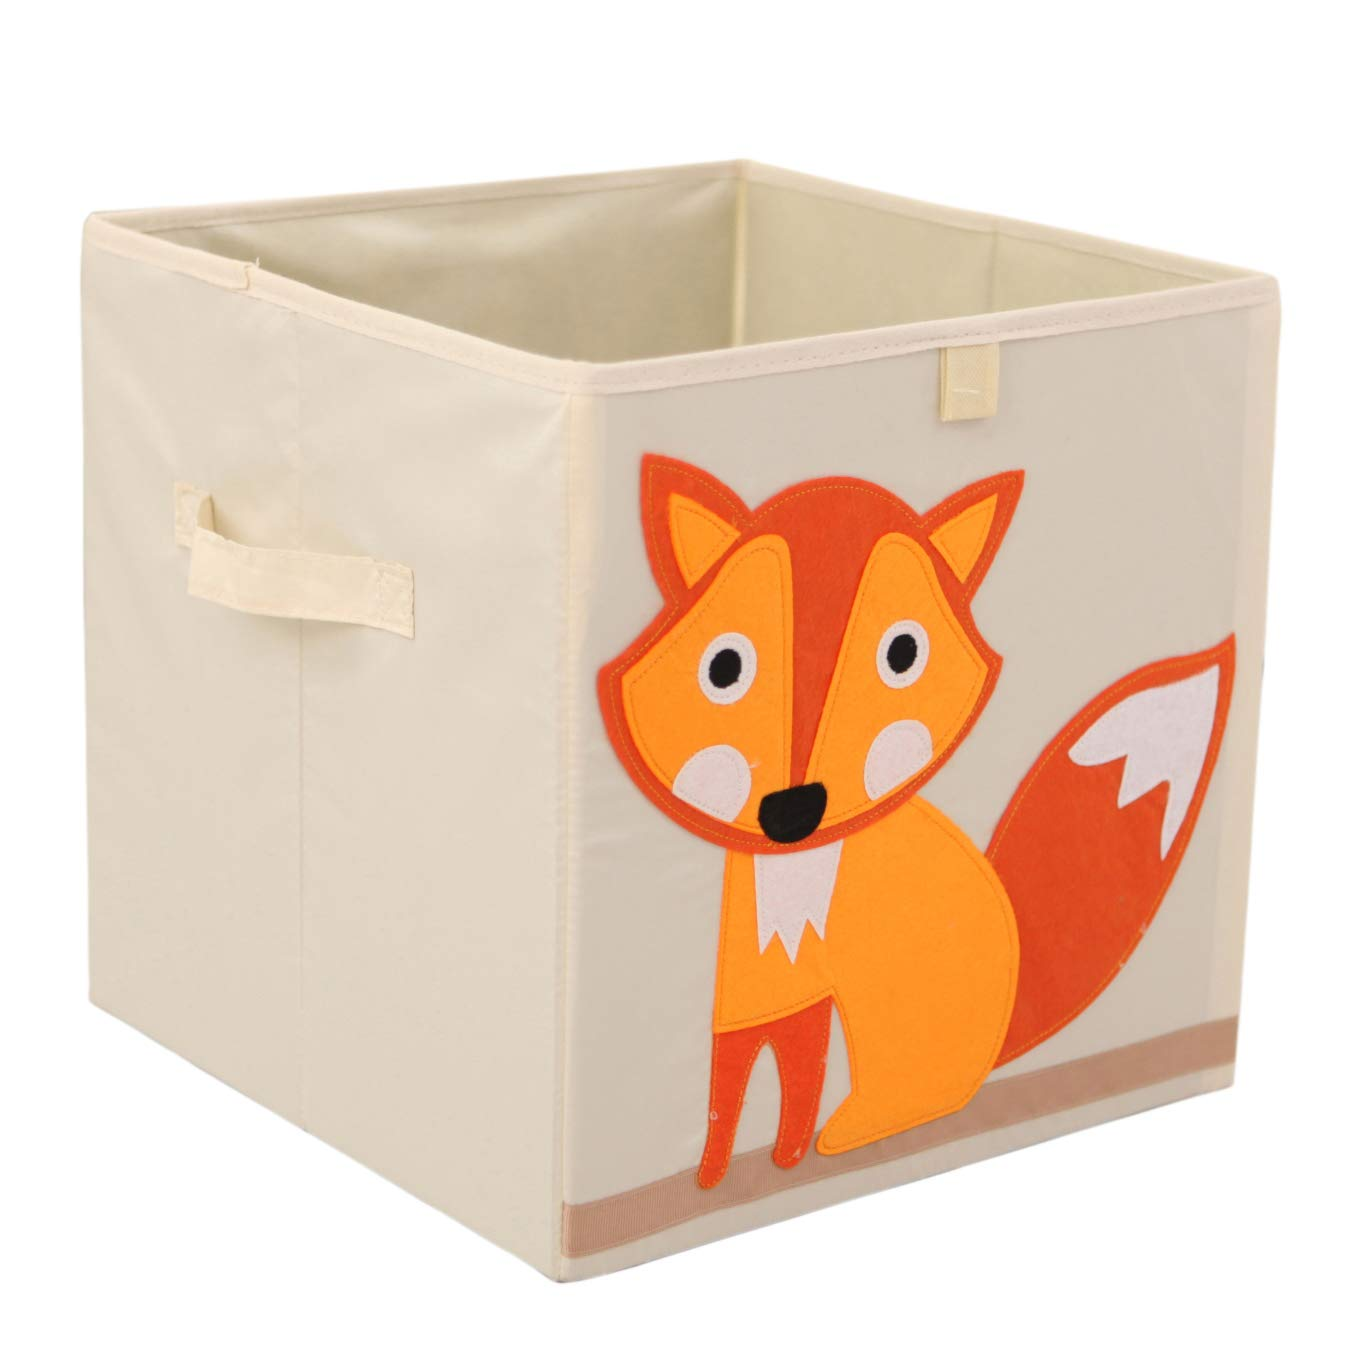 Murtoo Toy Bin Foldable Storage Cube Box Eco Friendly Fabric Toy Storage Cubes Organizer for Kids Toy Chest, 11 Inch (Fox) by murtoo